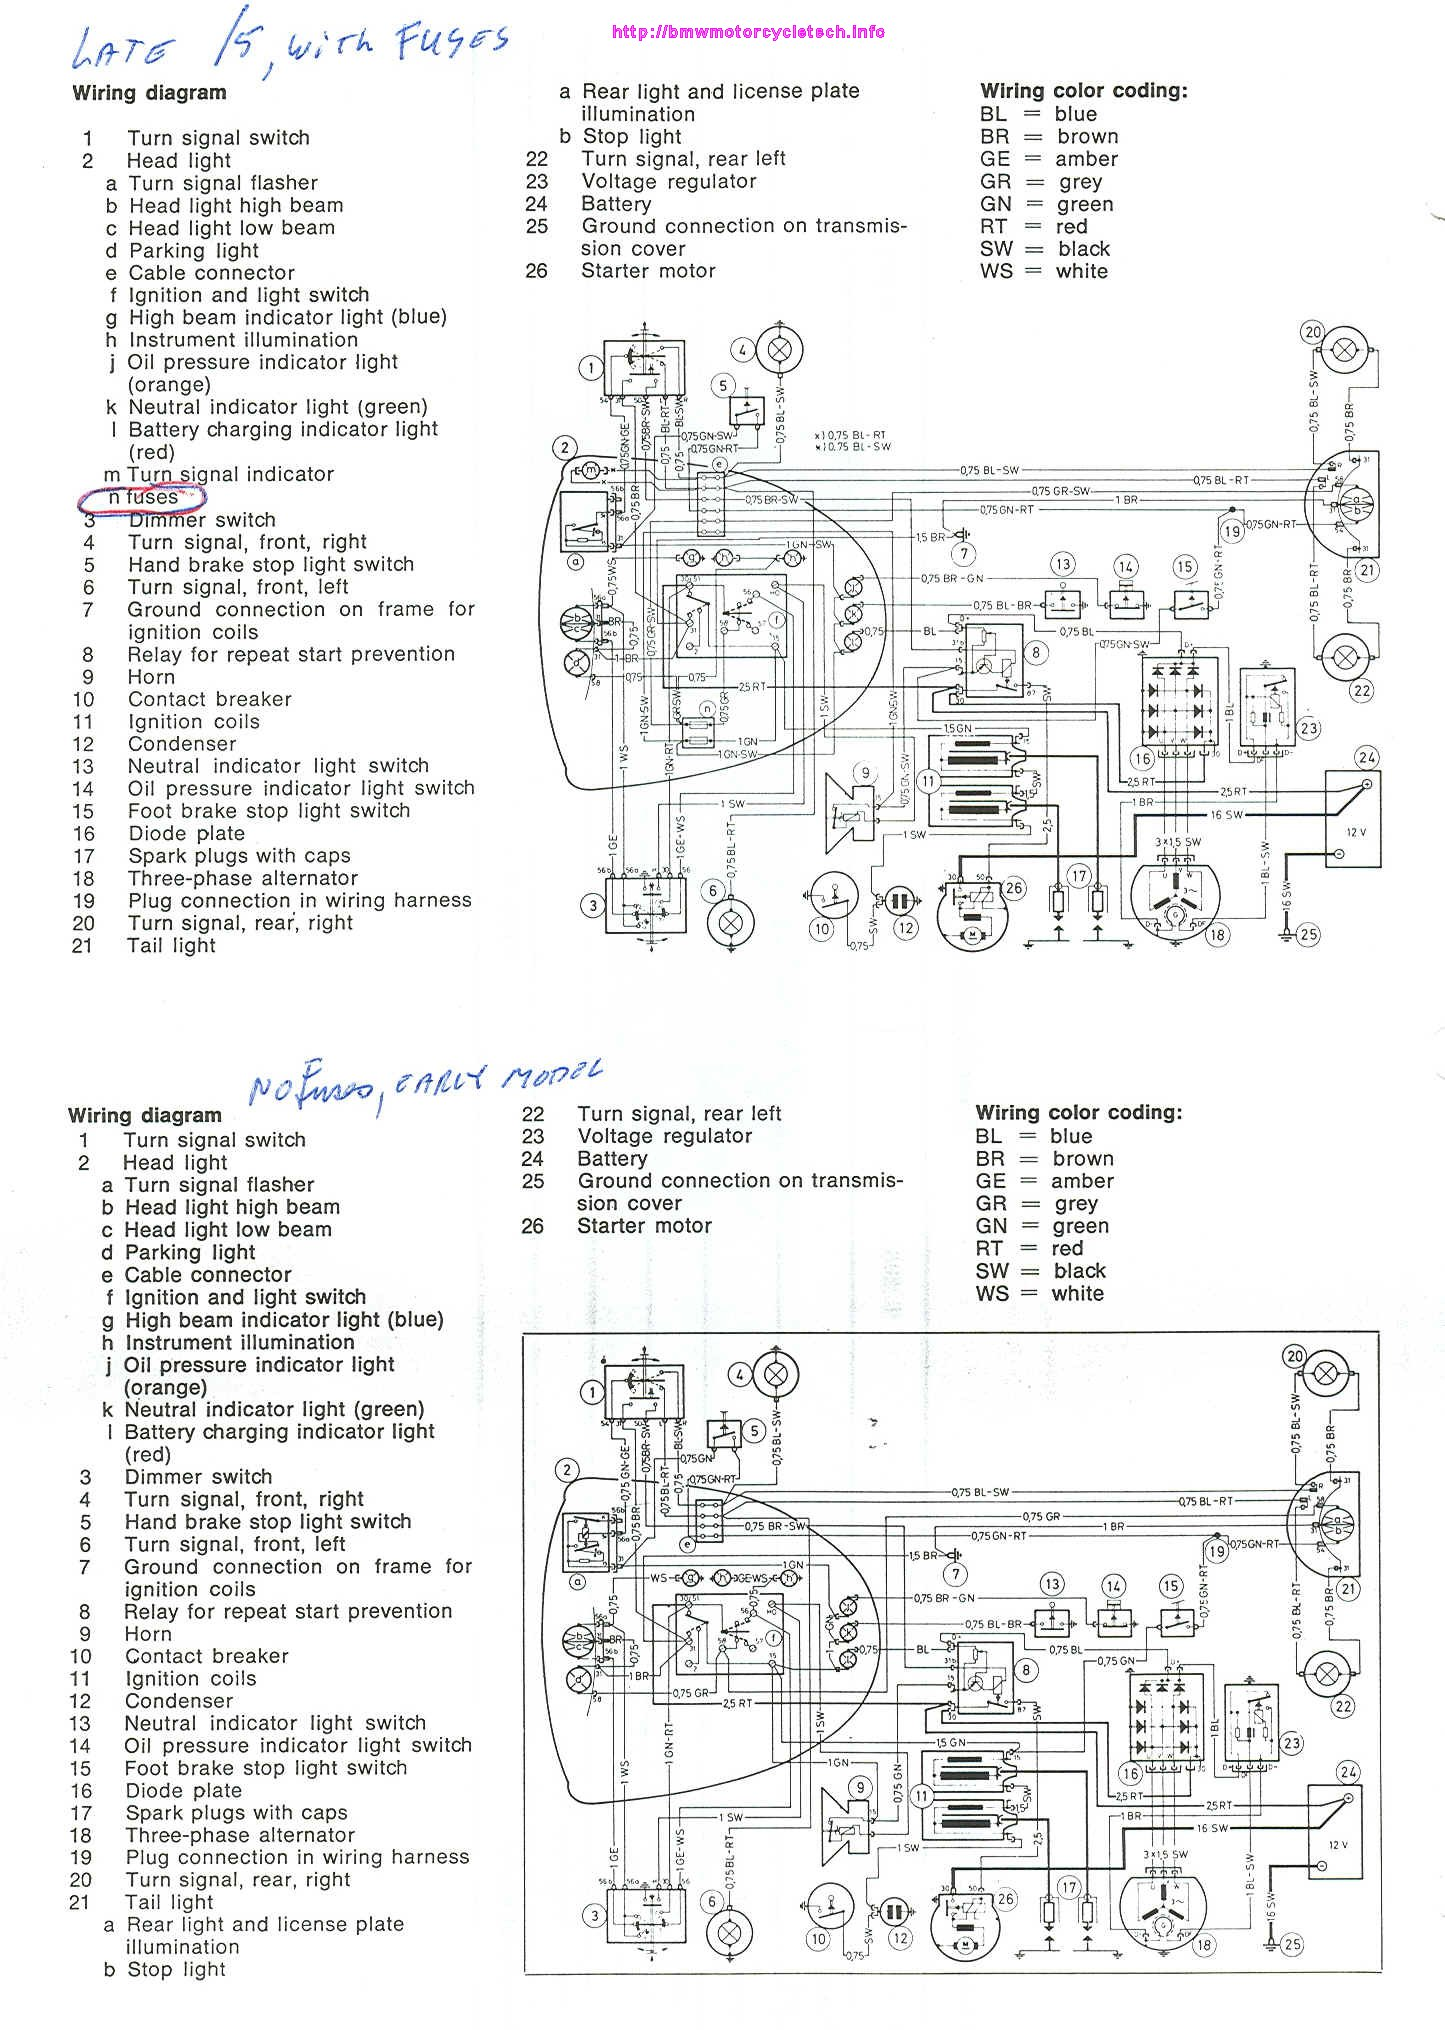 hight resolution of 38f schematic diagrams for both early and late 5 early model had no fuses set your browser to expand the image as needed it will be cleanly displayed